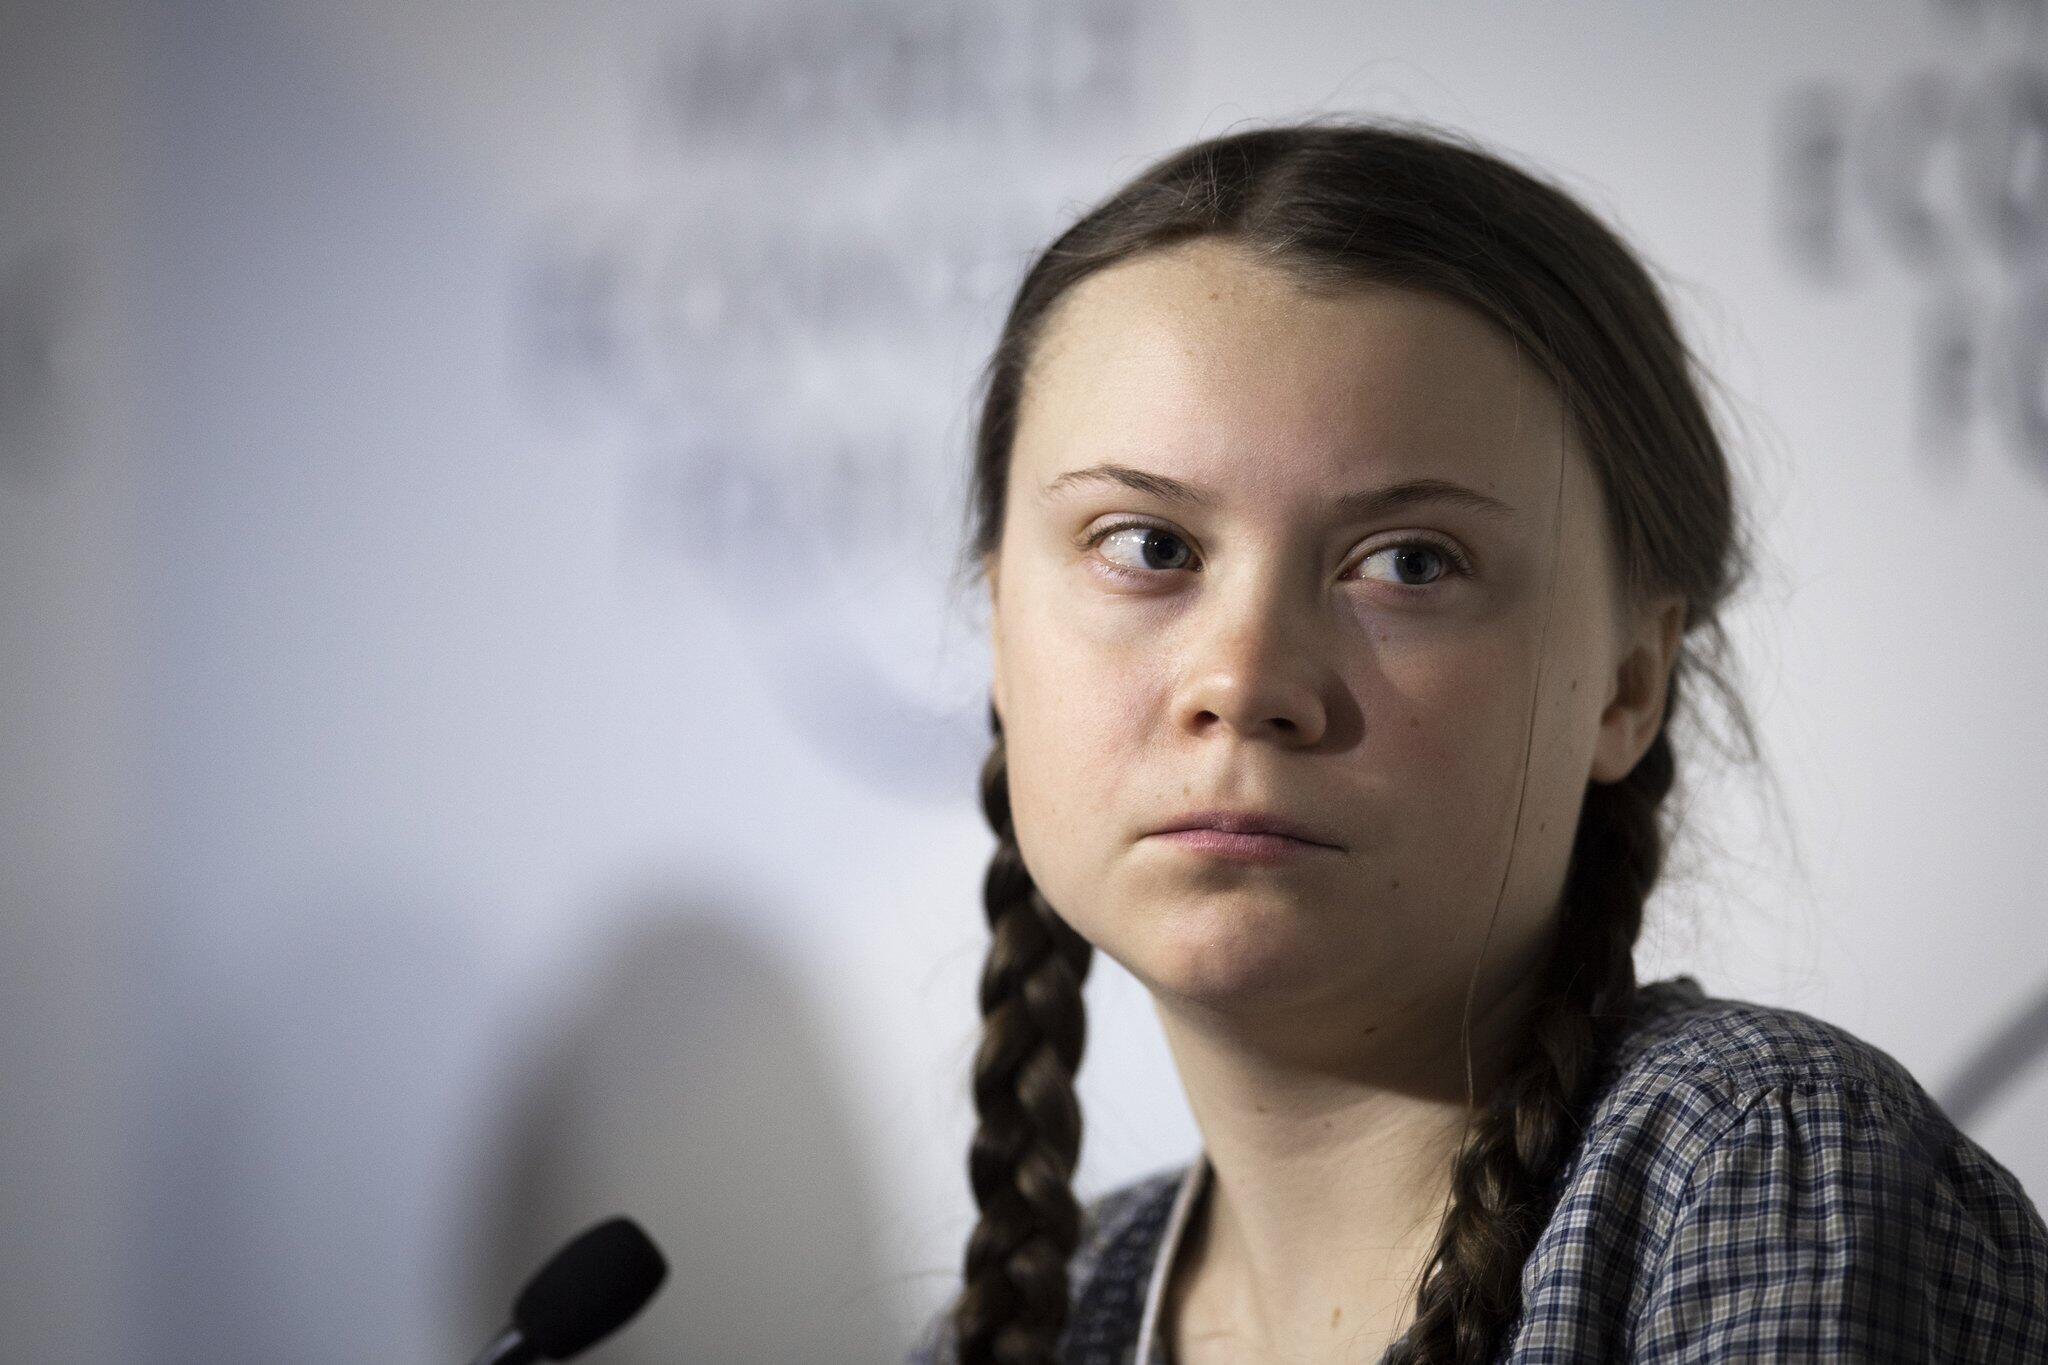 greta thunberg - photo #19